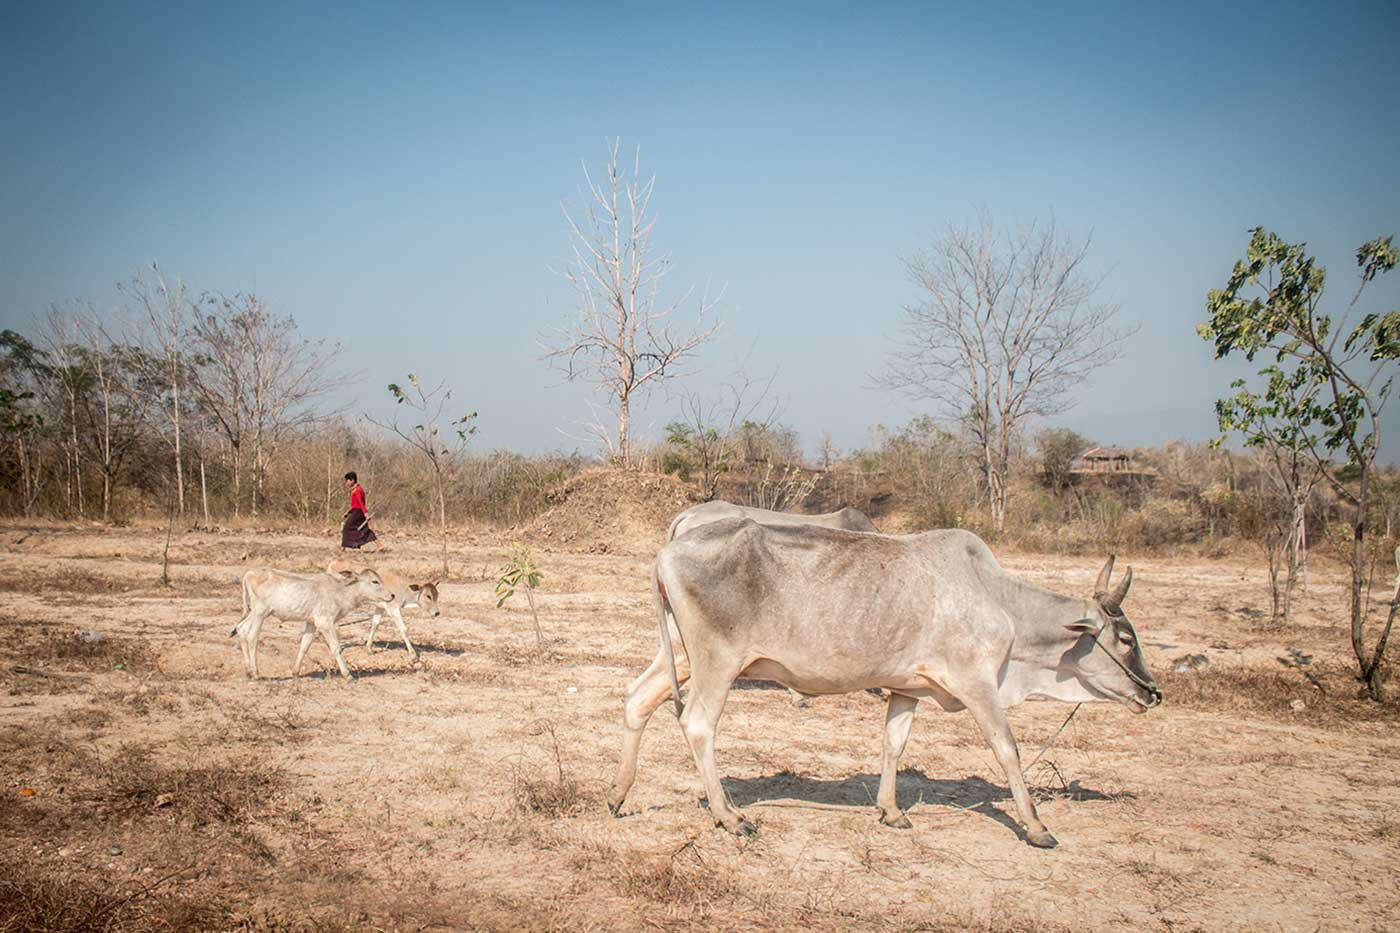 Just a few blocks away from Myanmar's parliament, a young farmer herds cattle.